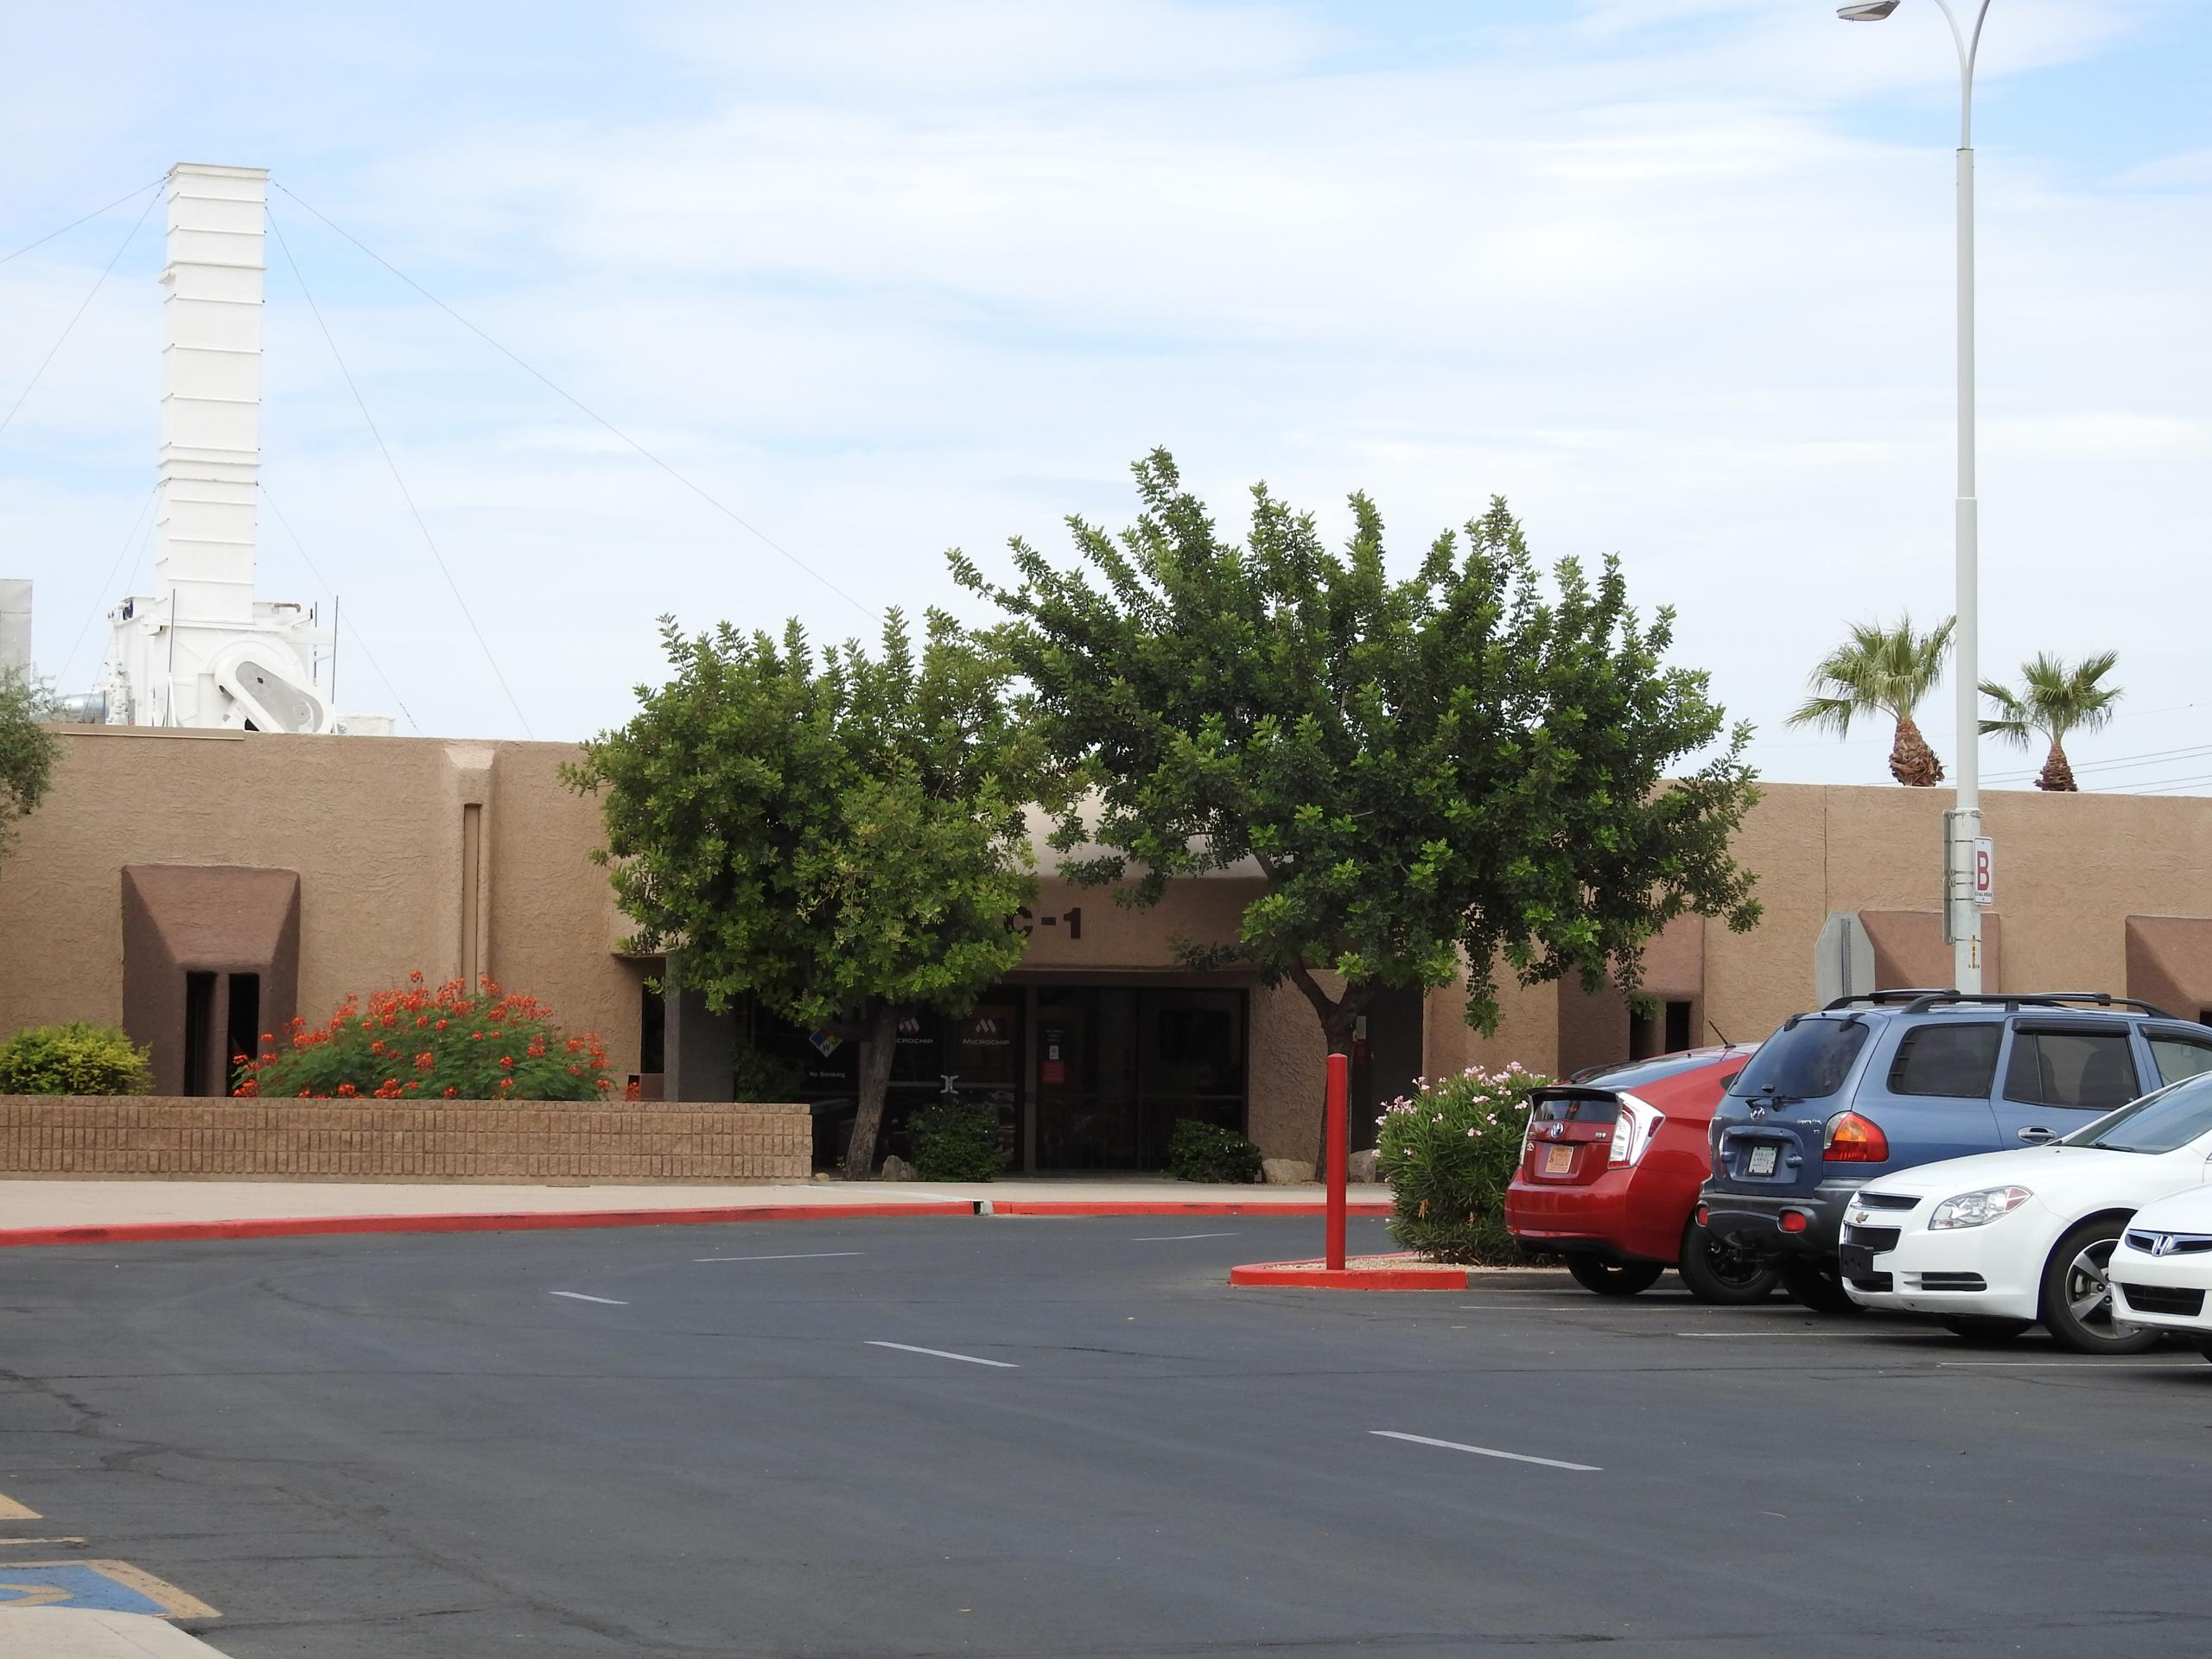 Microchip's corporate headquarters in Chandler, Arizona.